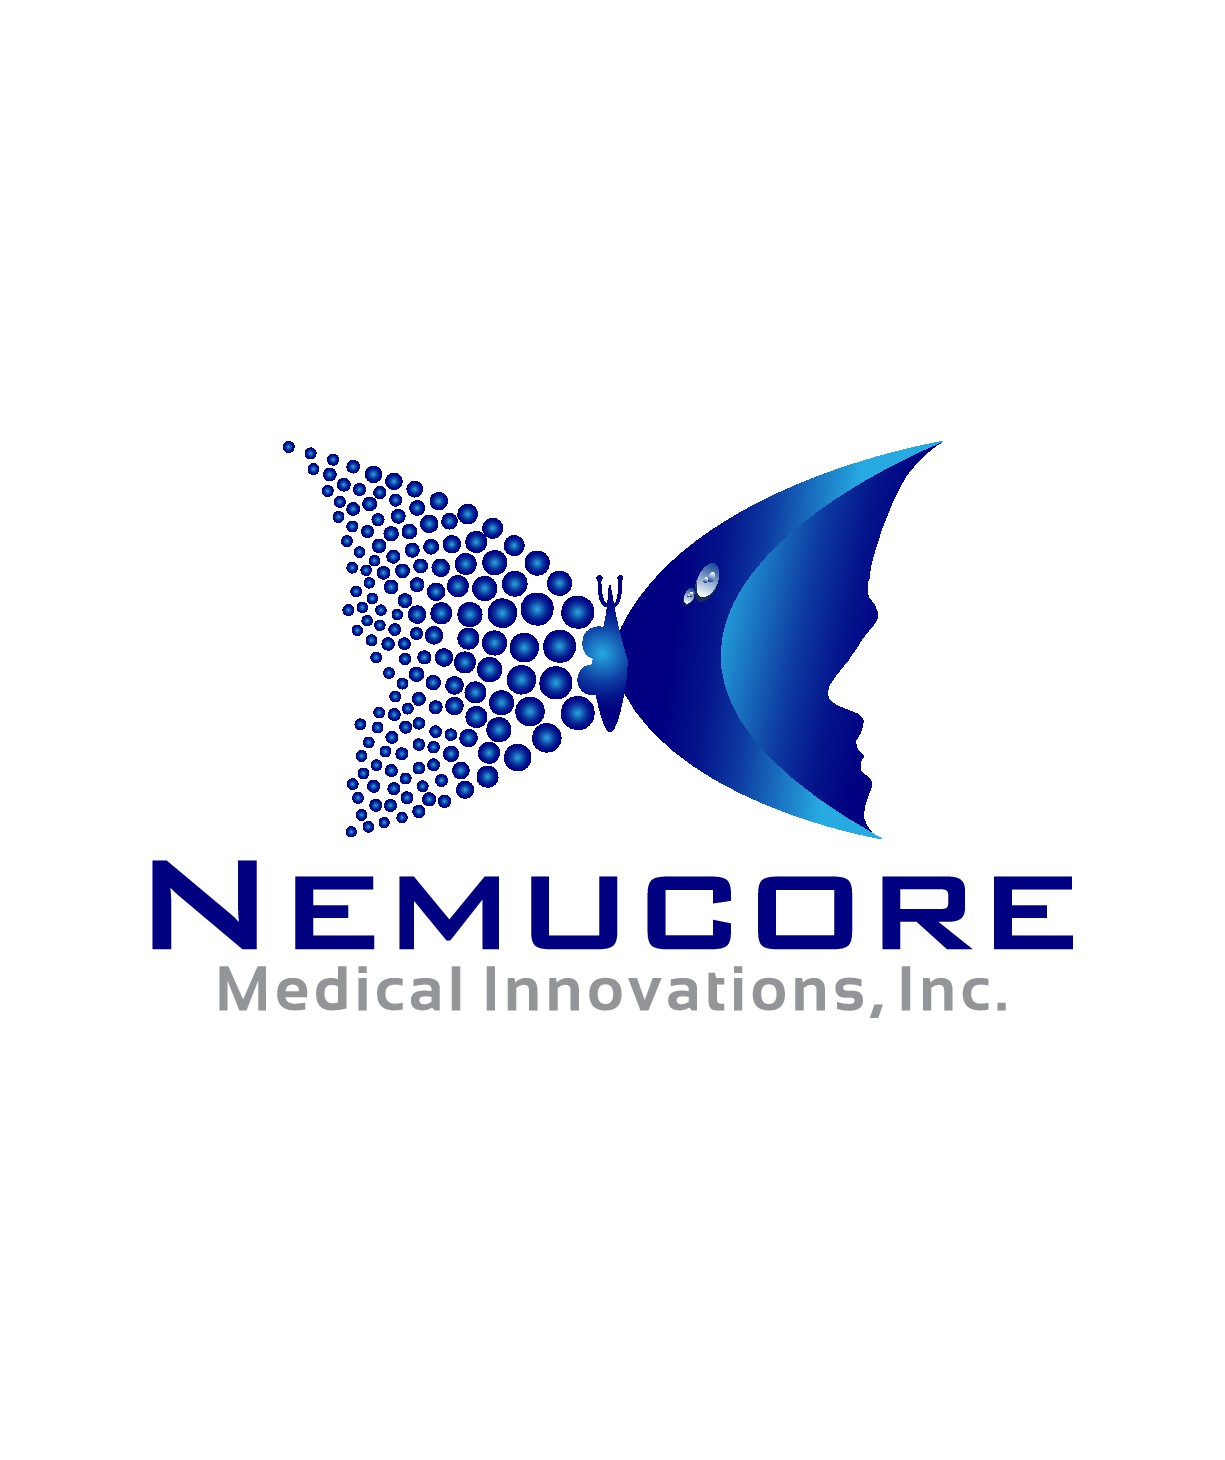 Create a logo that captures Nemucore's passion for curing cancer